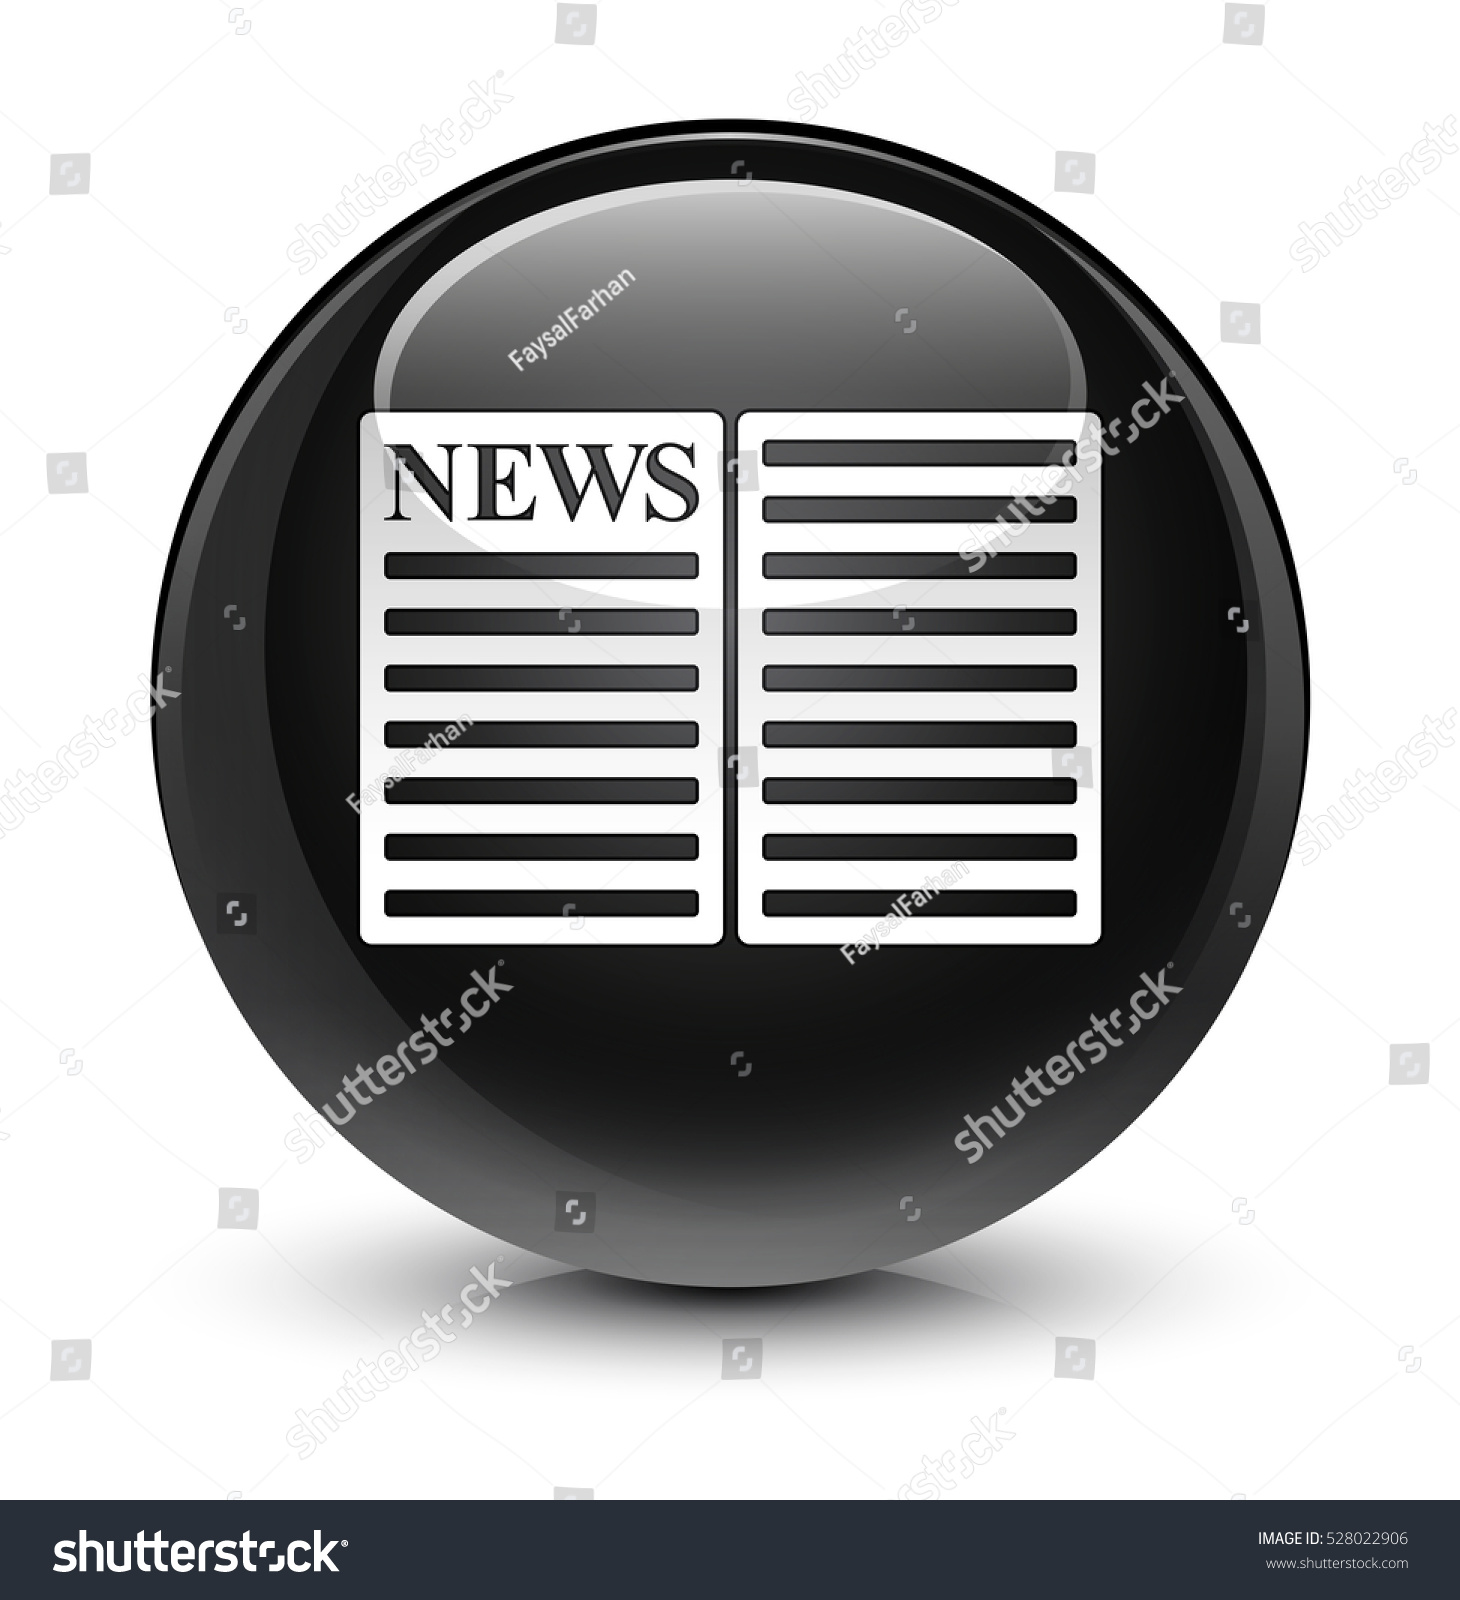 newspaper icon glassy black round button stock illustration